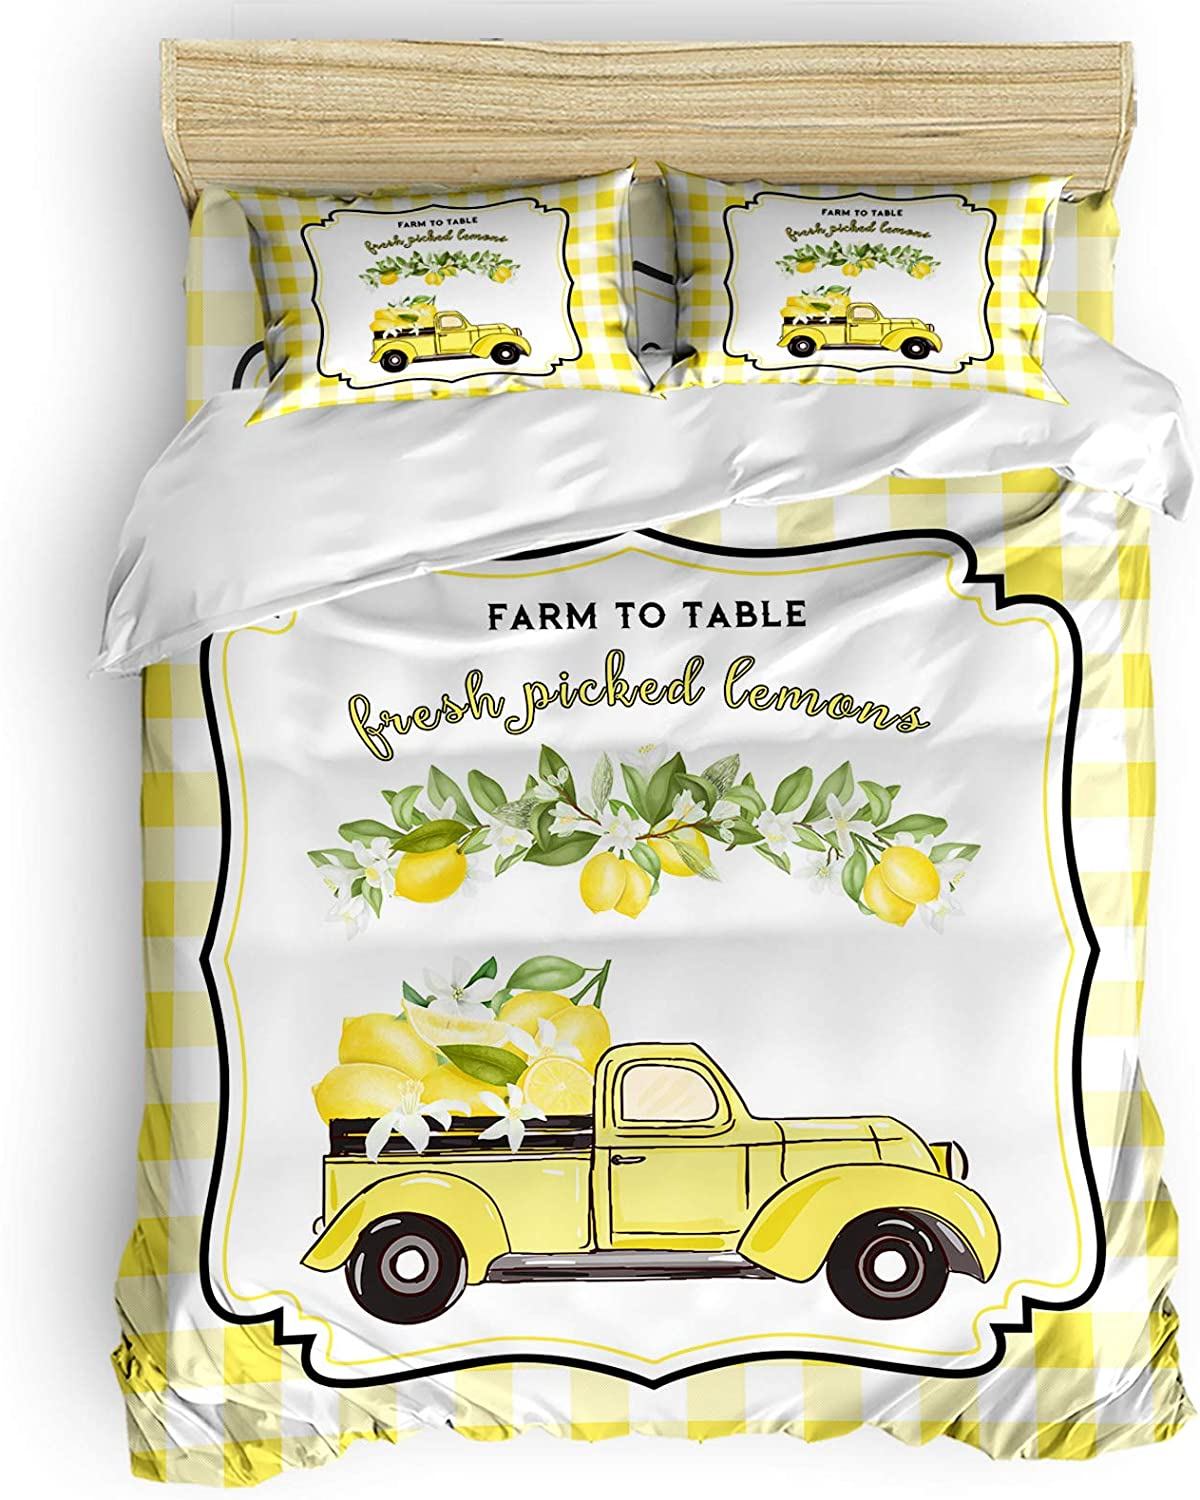 Bombing free shipping Branded goods Twin Comforter Covers Sets Rustic Truck Loads Fresh 4 of Lemons